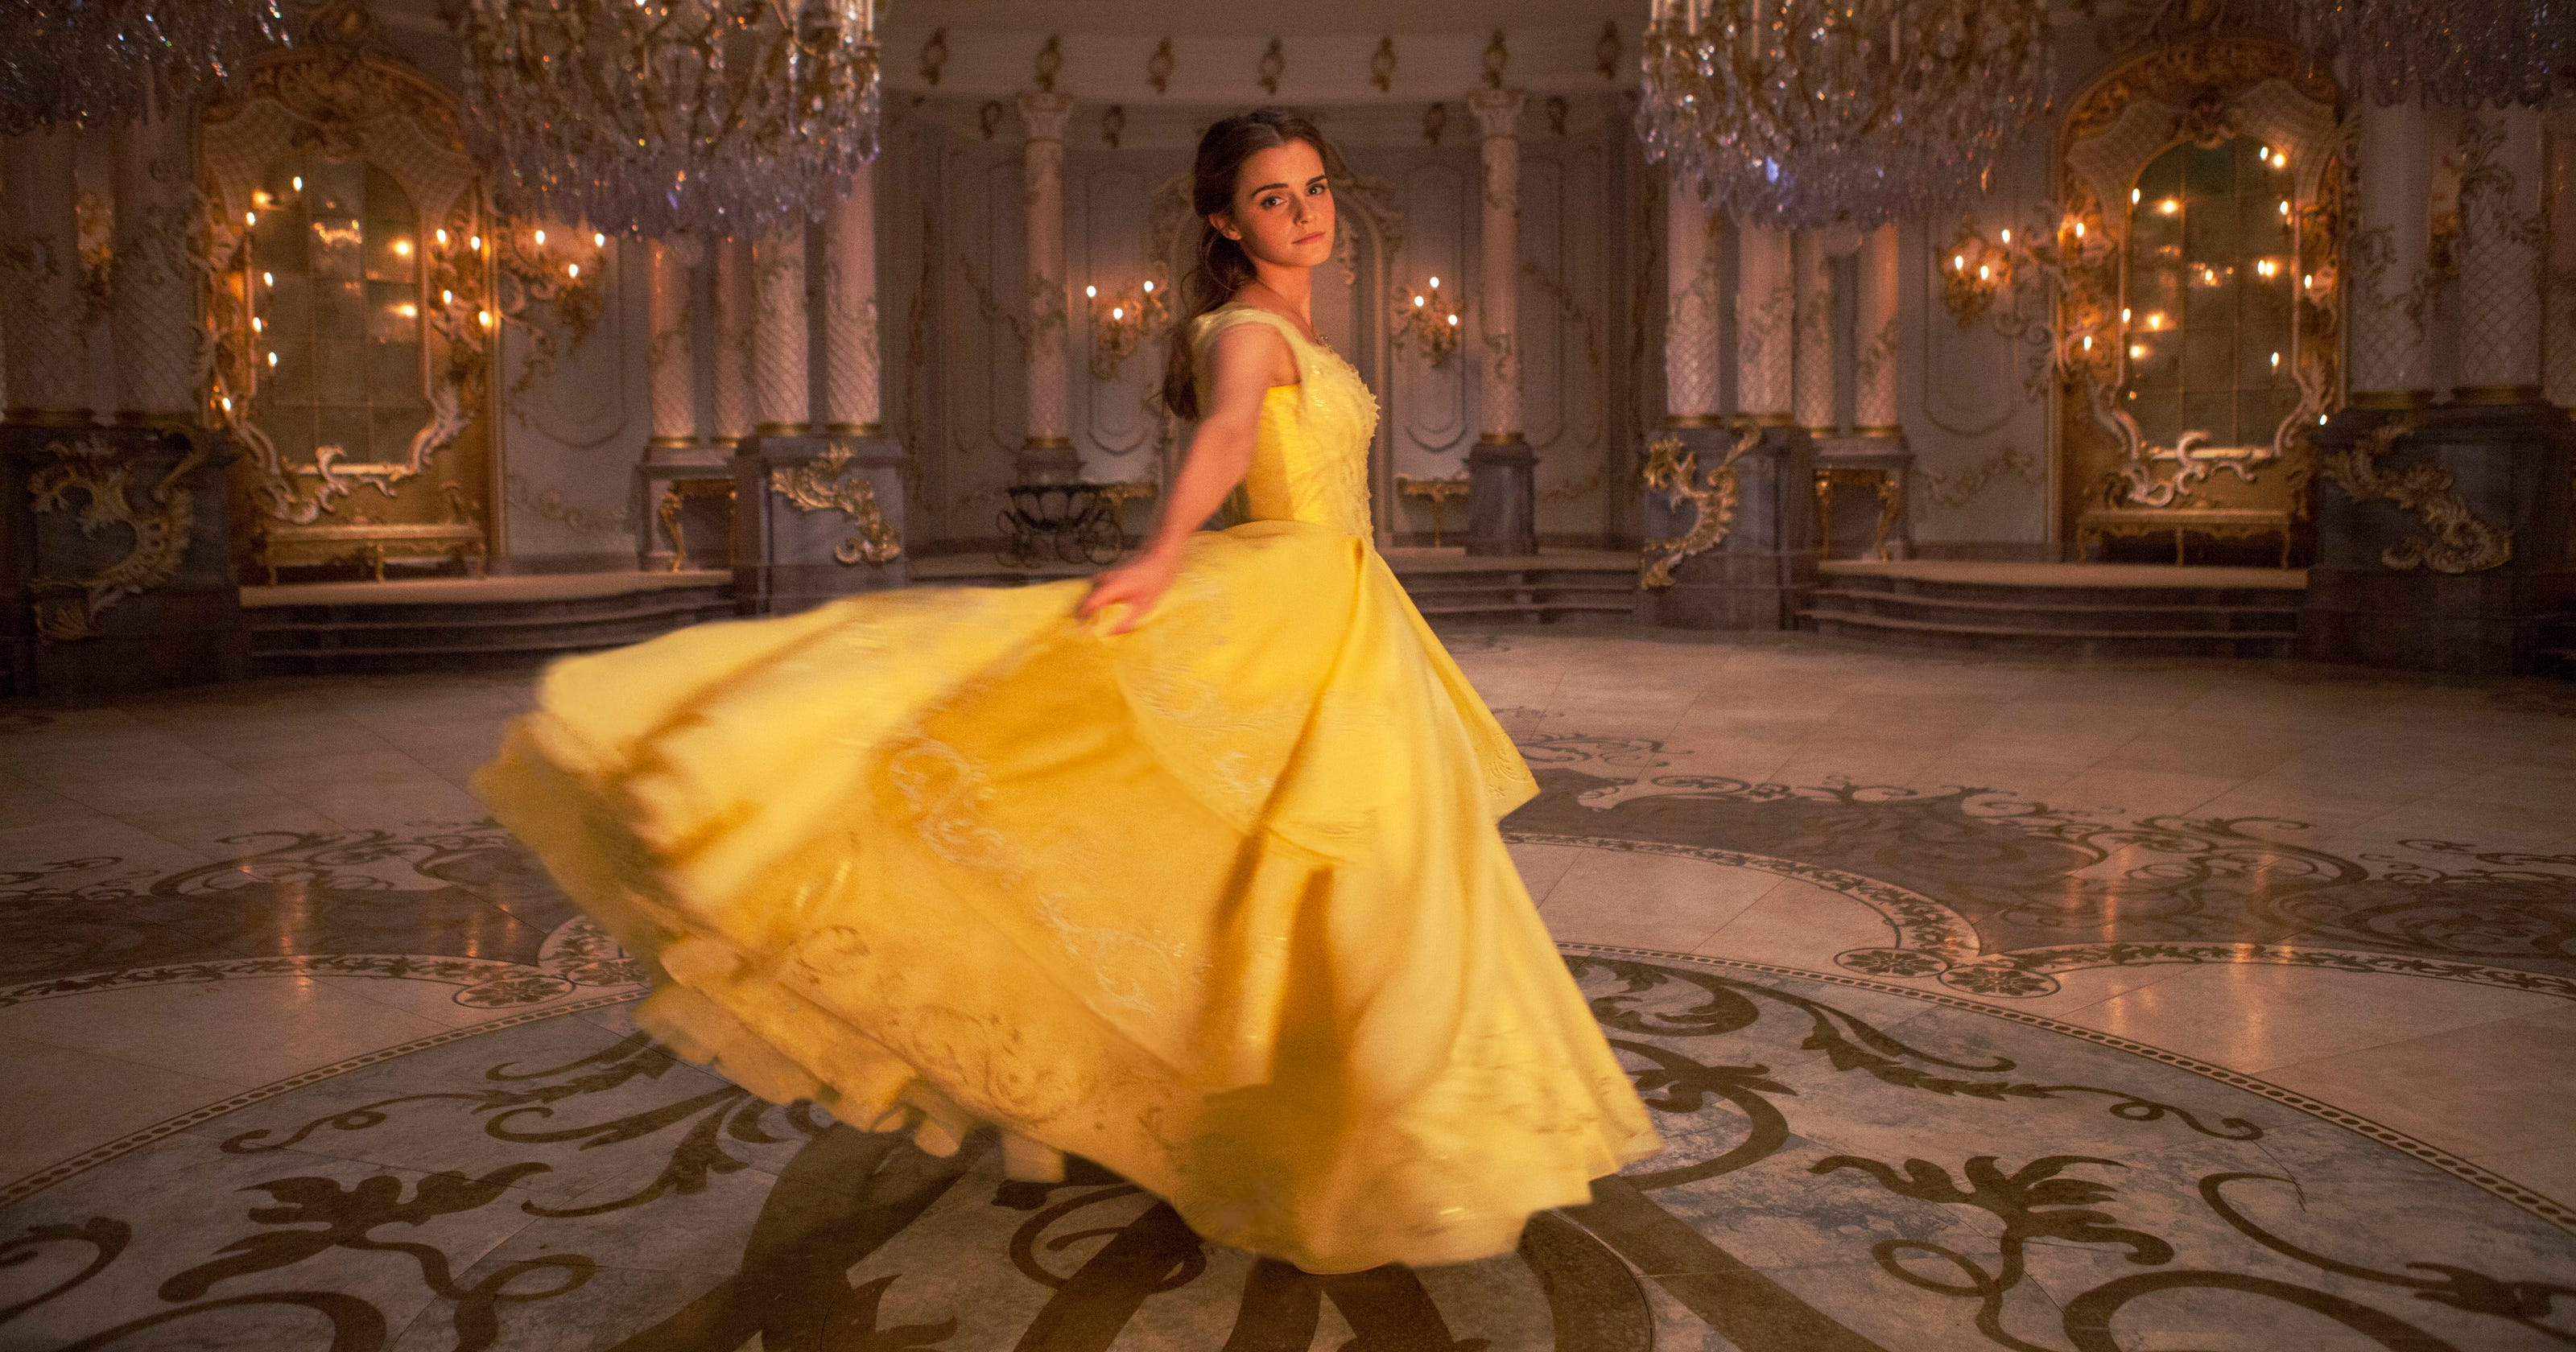 Emma Watson S Belle Ditches The Corset And Princess Title In Beauty